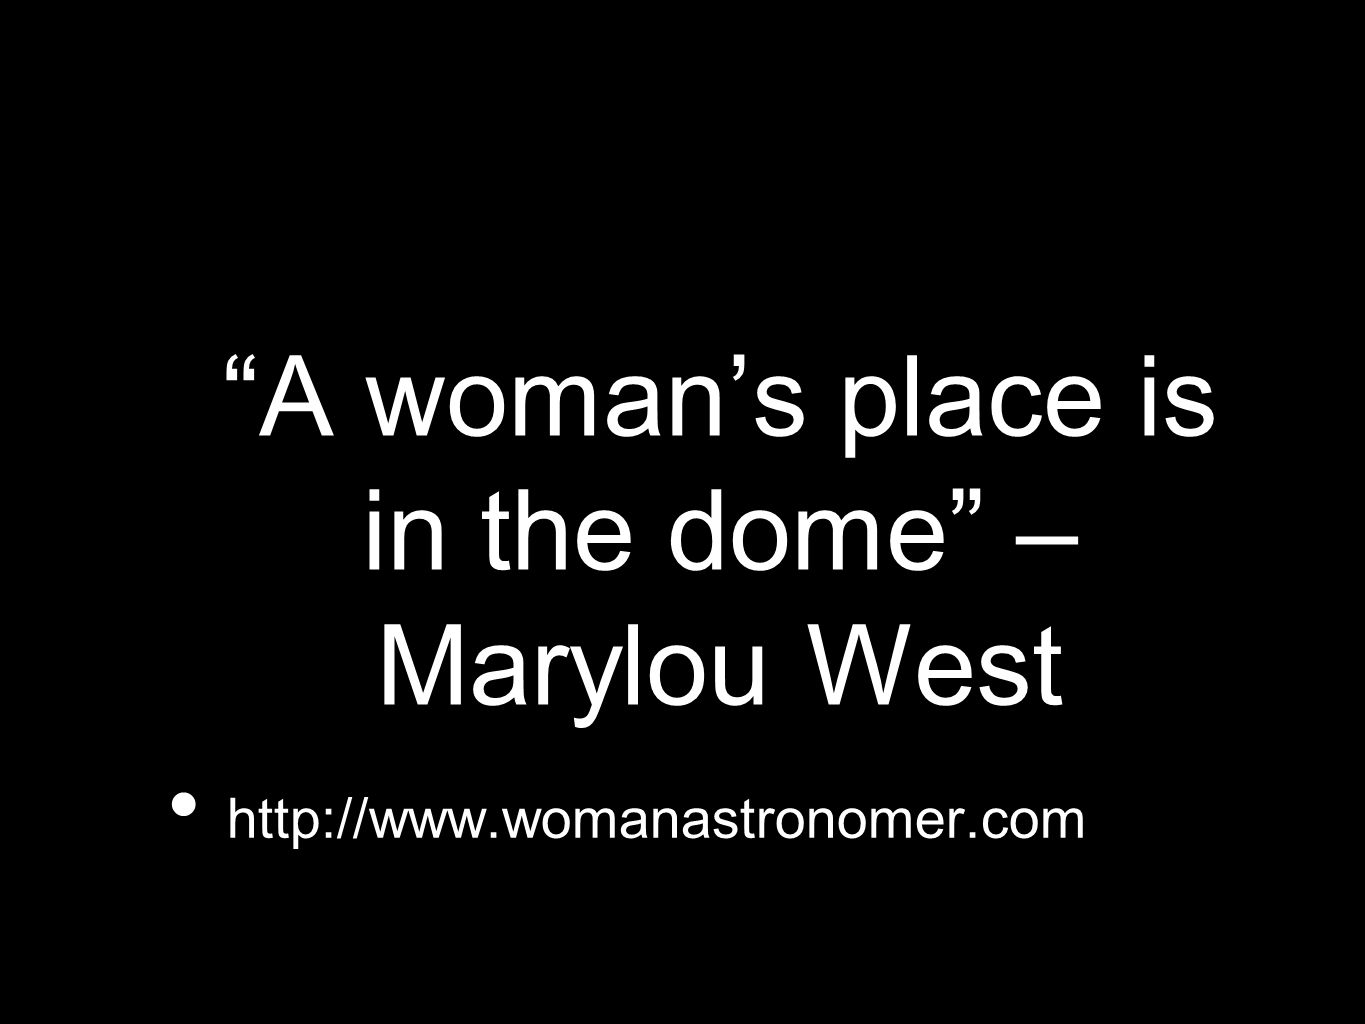 A woman's place is in the dome – Marylou West http://www.womanastronomer.com